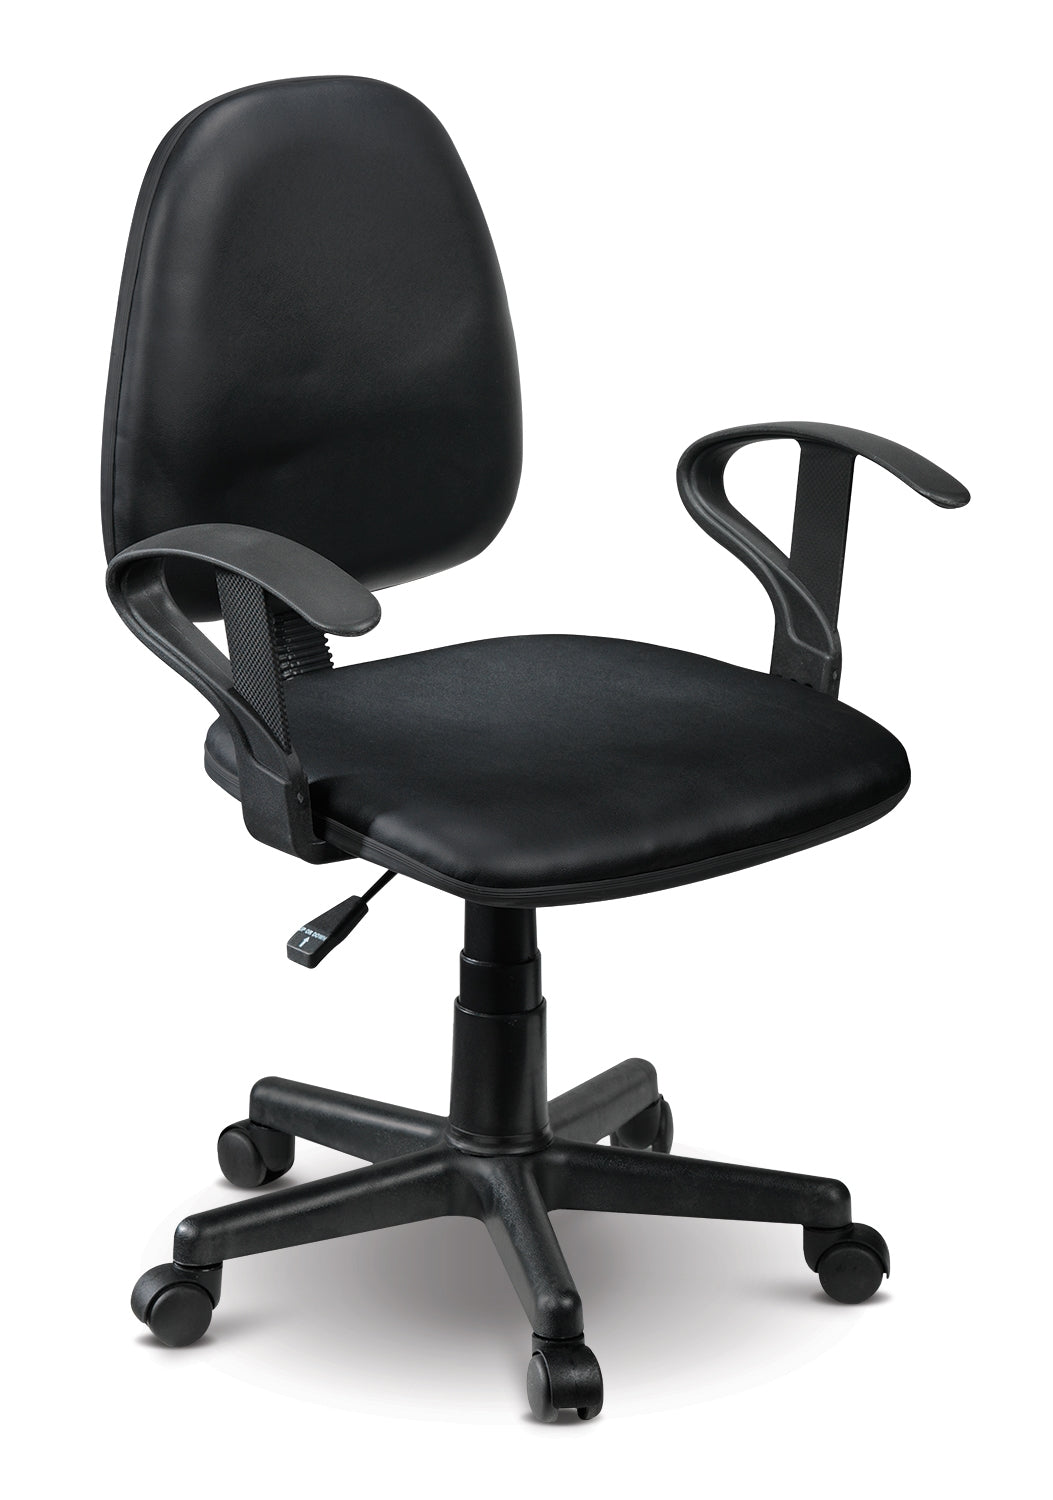 office chair pictures. Dresden Office Chair - Black Pictures